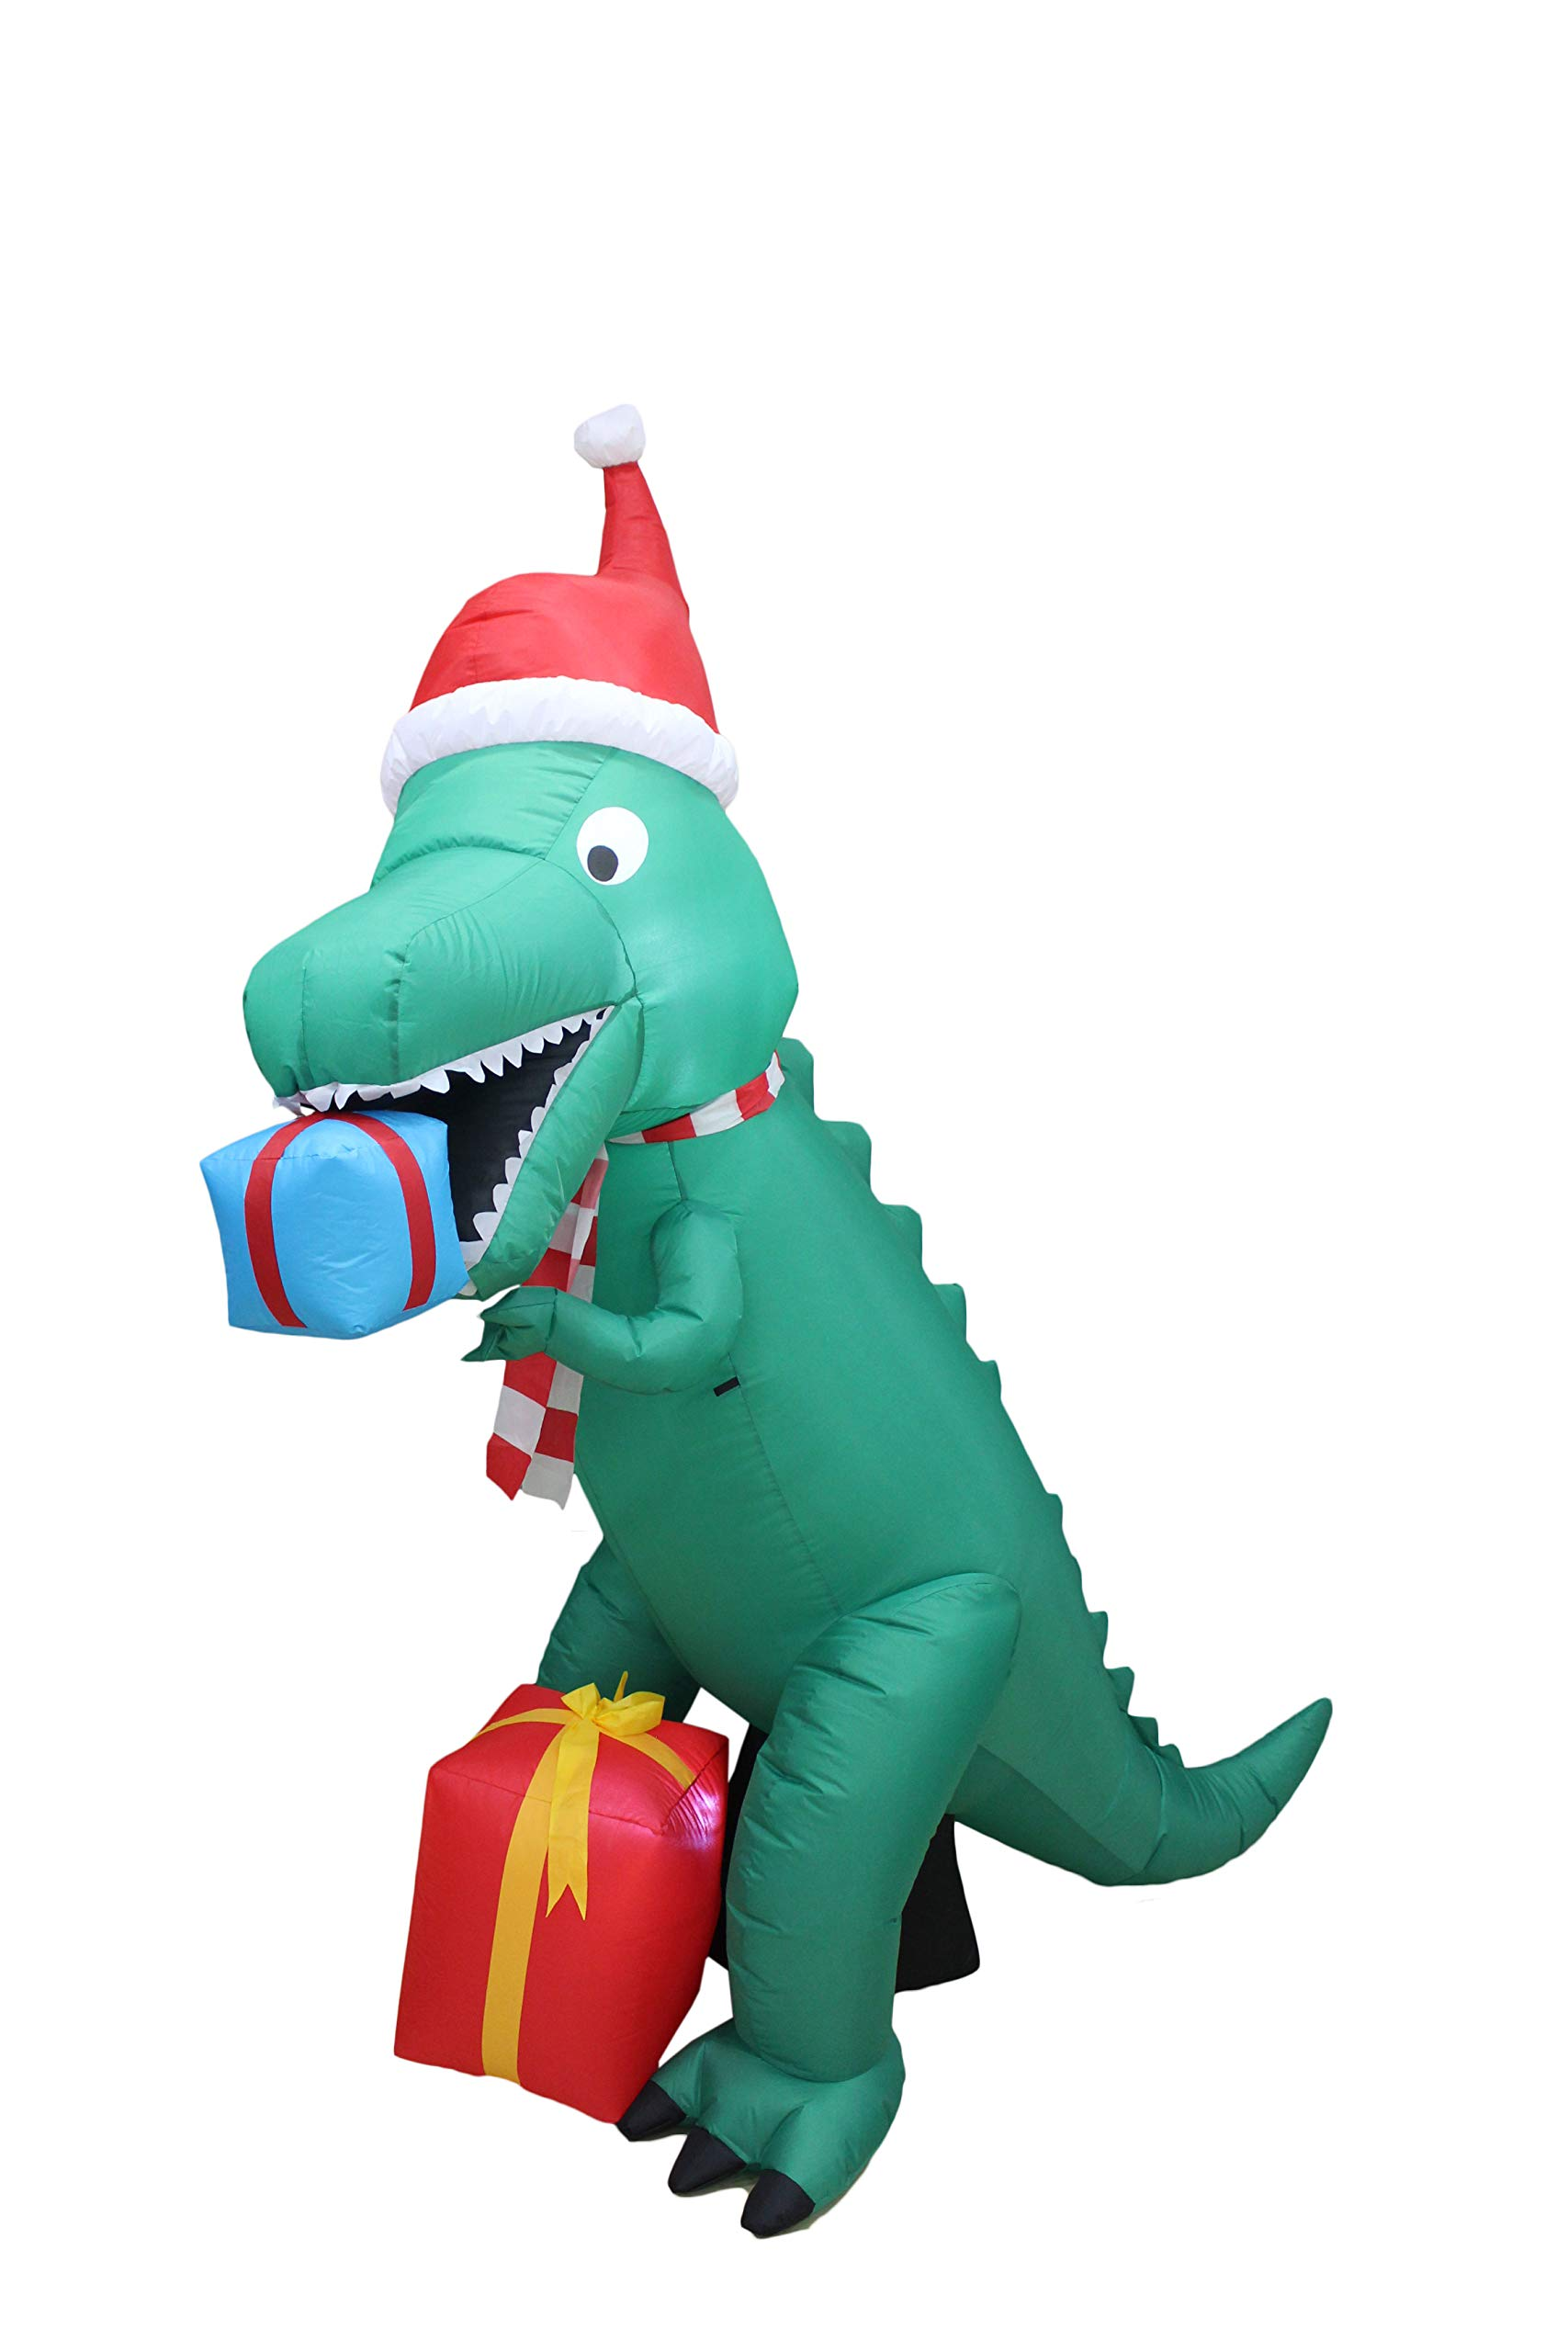 7 Foot Tall Christmas Inflatable Dinosaur with Gift Boxes Cute Lights Lighted Blowup Party Decoration for Outdoor Indoor Home Garden Family Prop Yard